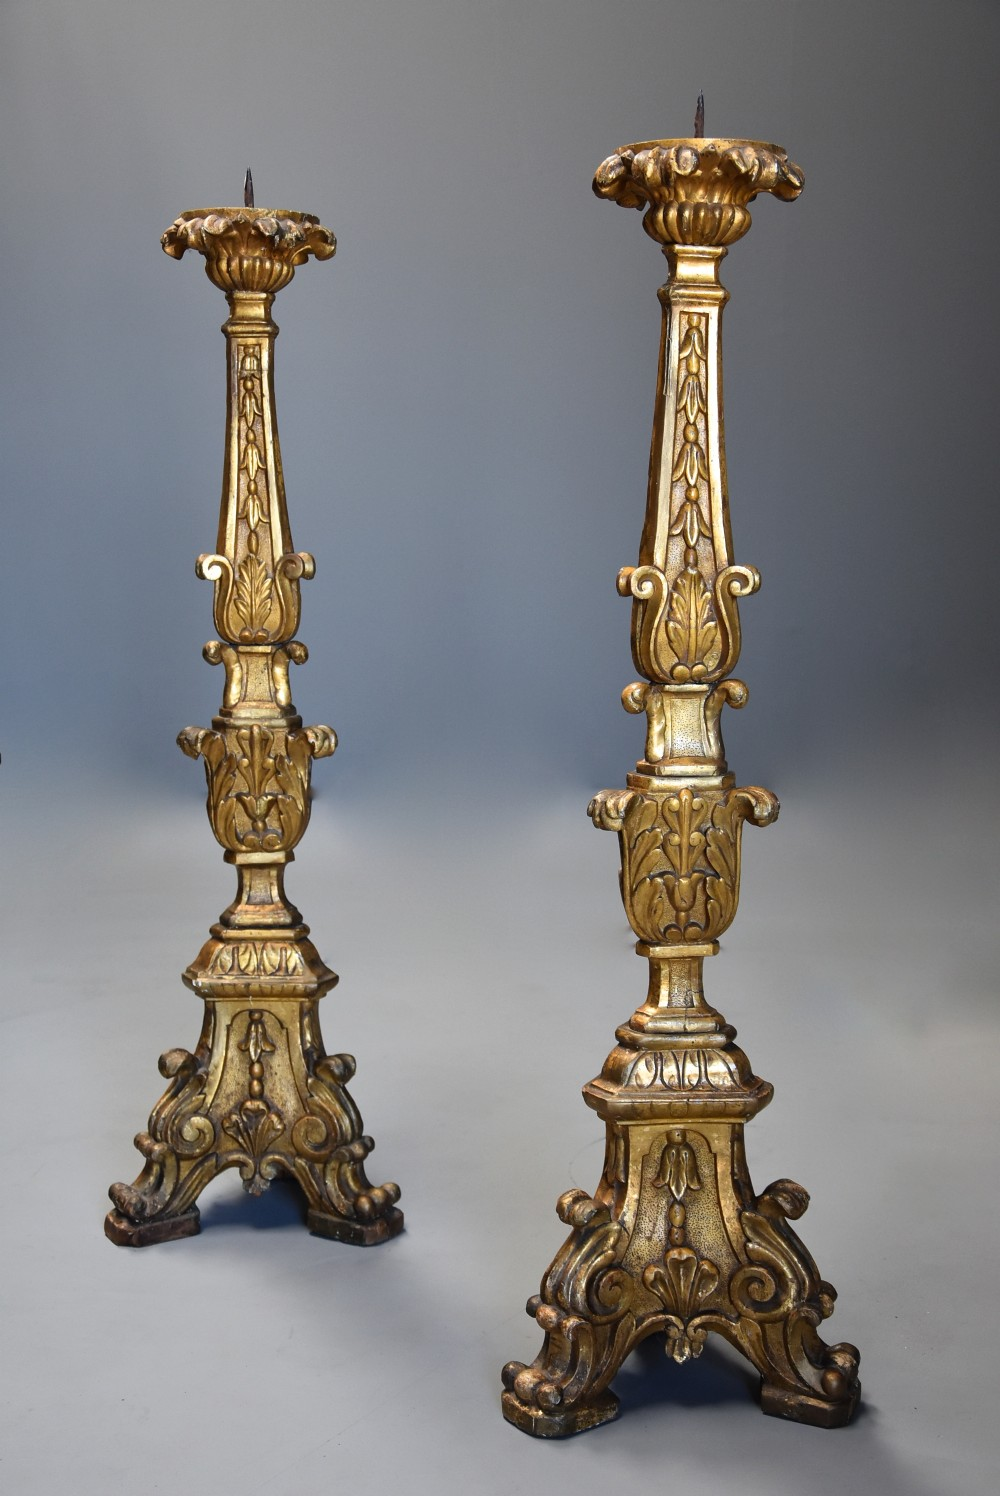 pair of large 18th century italian rococo carved giltwood pricket candlesticks